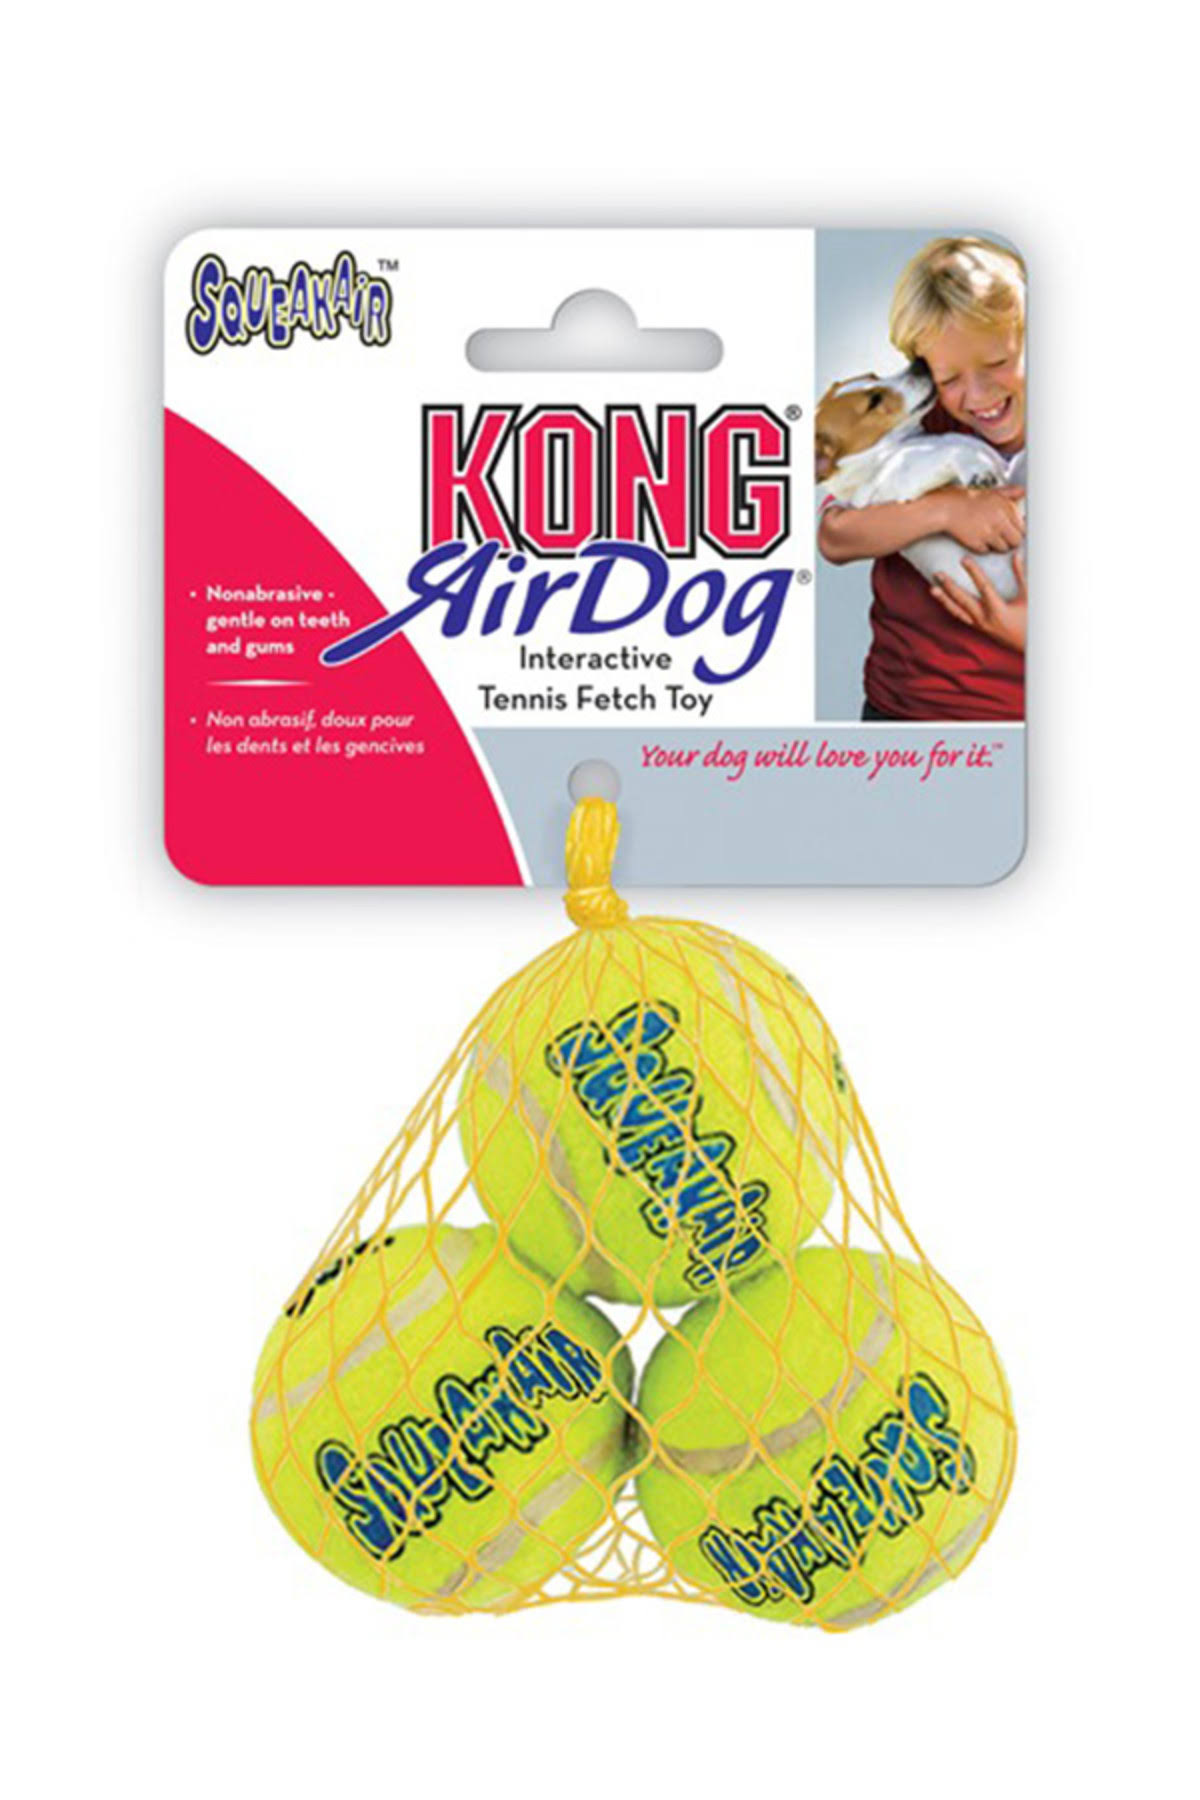 Kong Air Dog Squeaker Tennis Balls Dog Toy - Small, 3 Pack